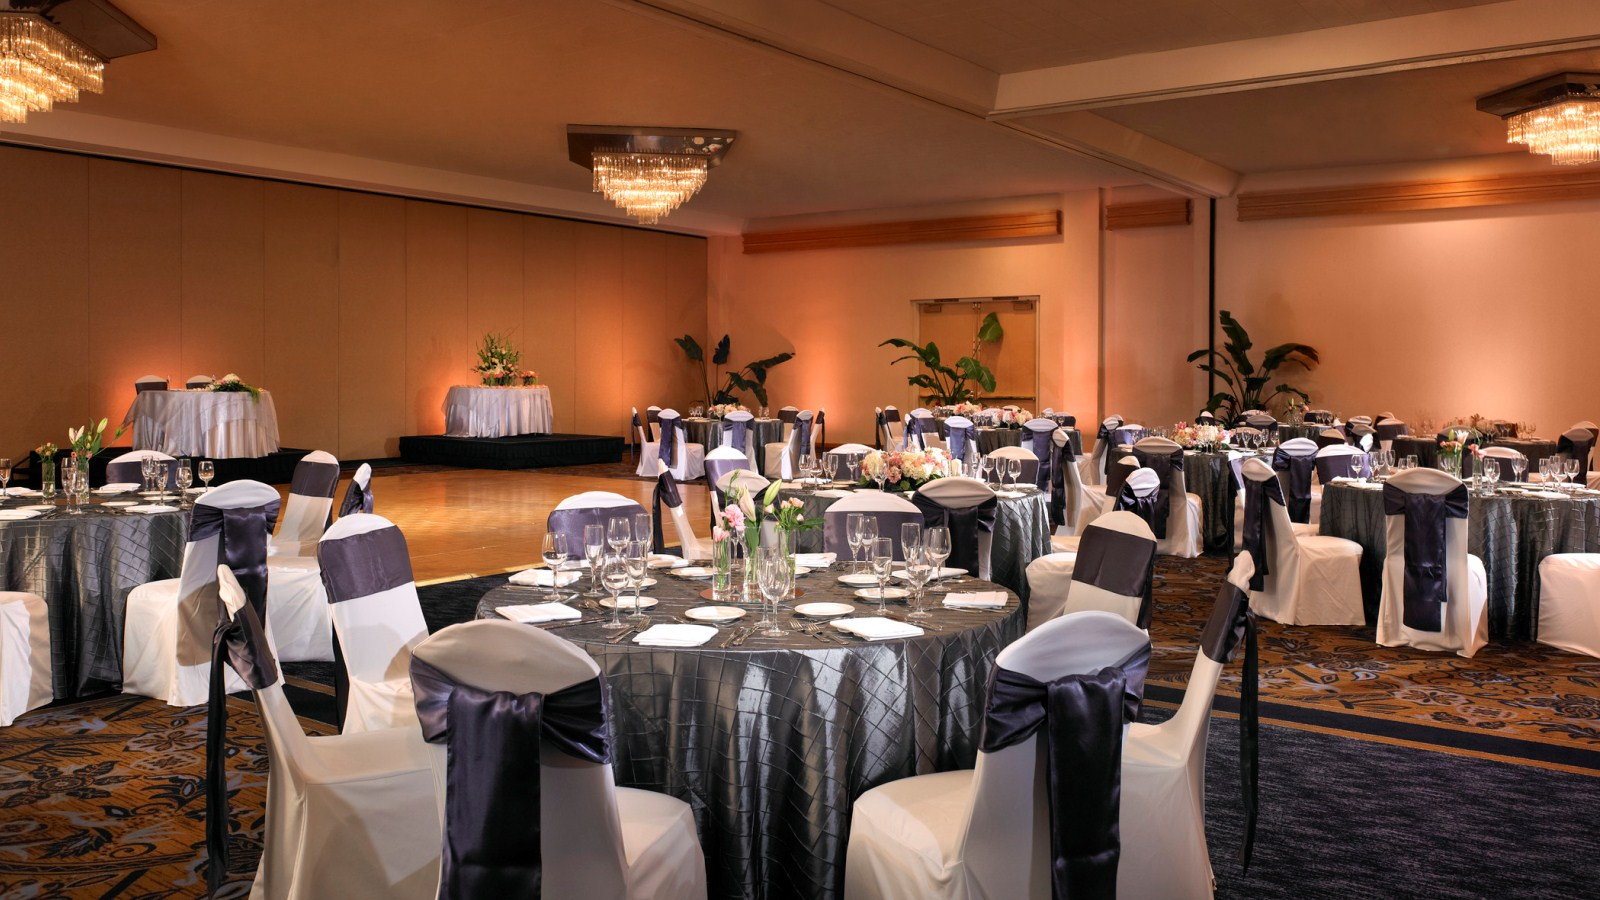 Weddings at disney parks and resorts - Park Ballroom Anaheim Wedding Venues